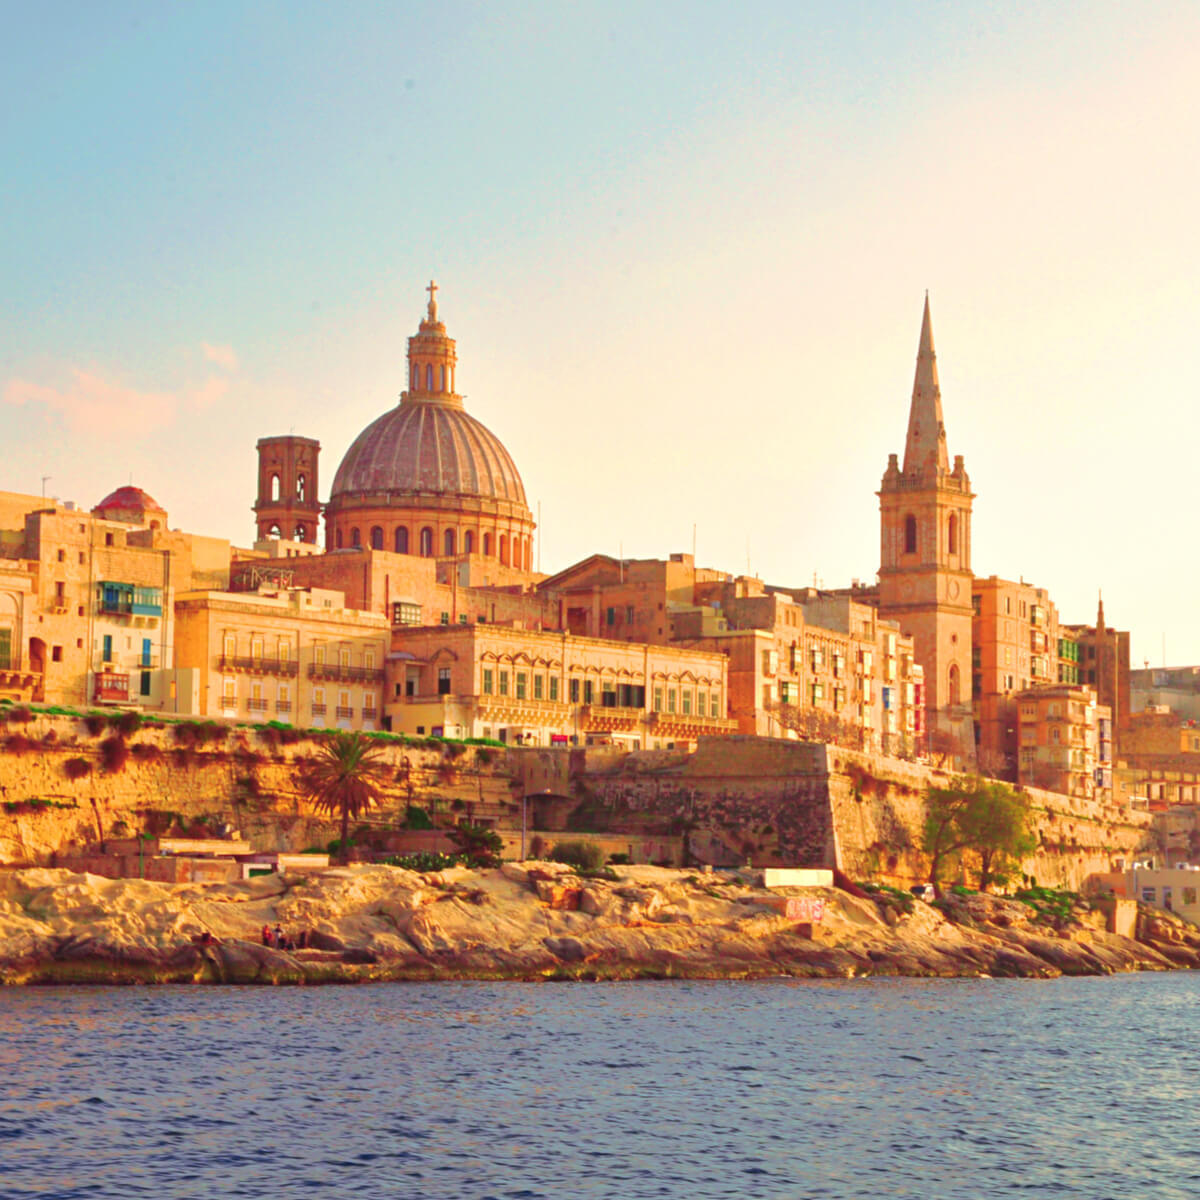 Search for medical and health jobs in Malta